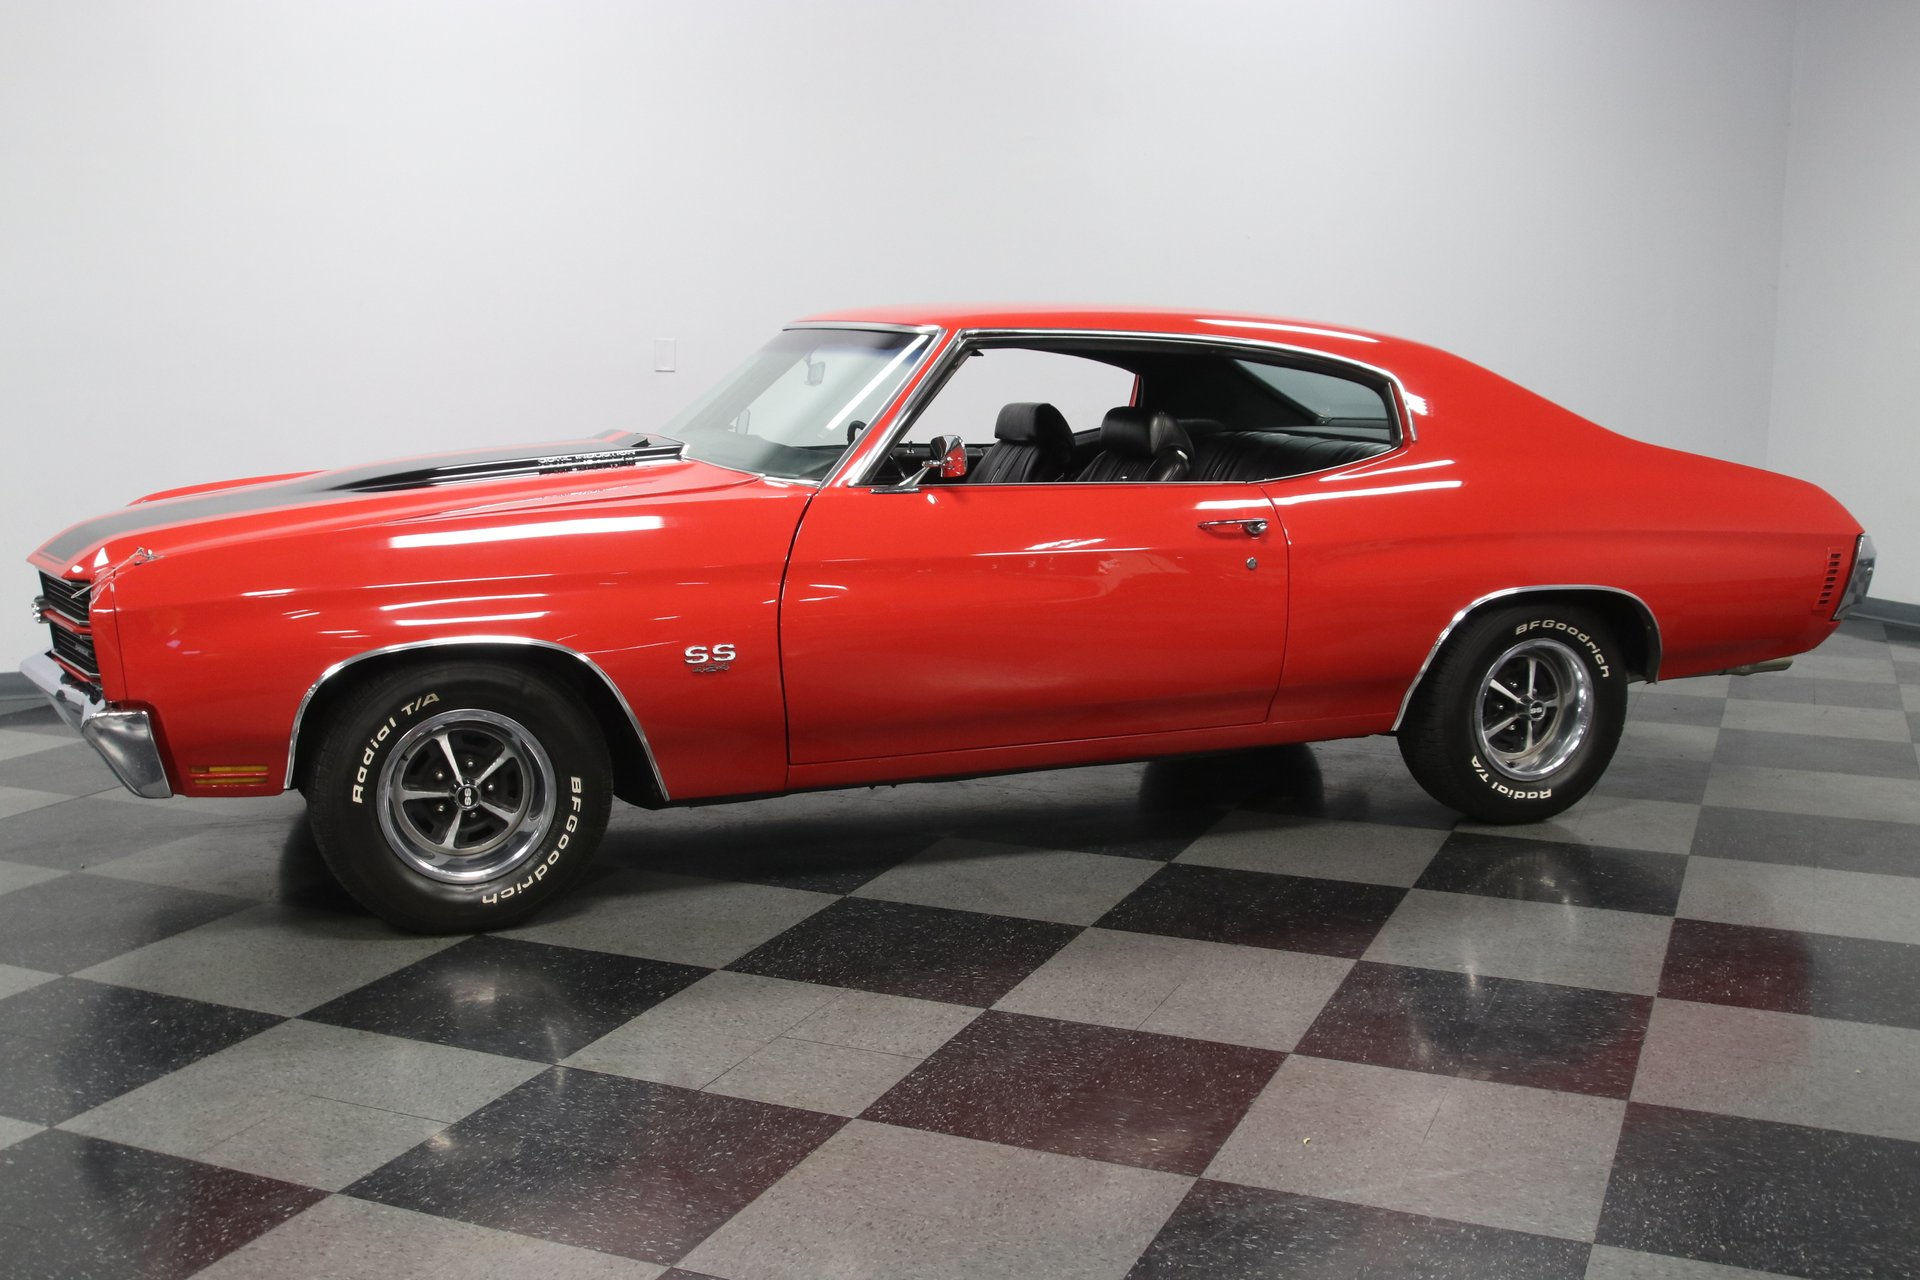 1970 Chevrolet Chevelle | Streetside Classics - The Nation's Trusted